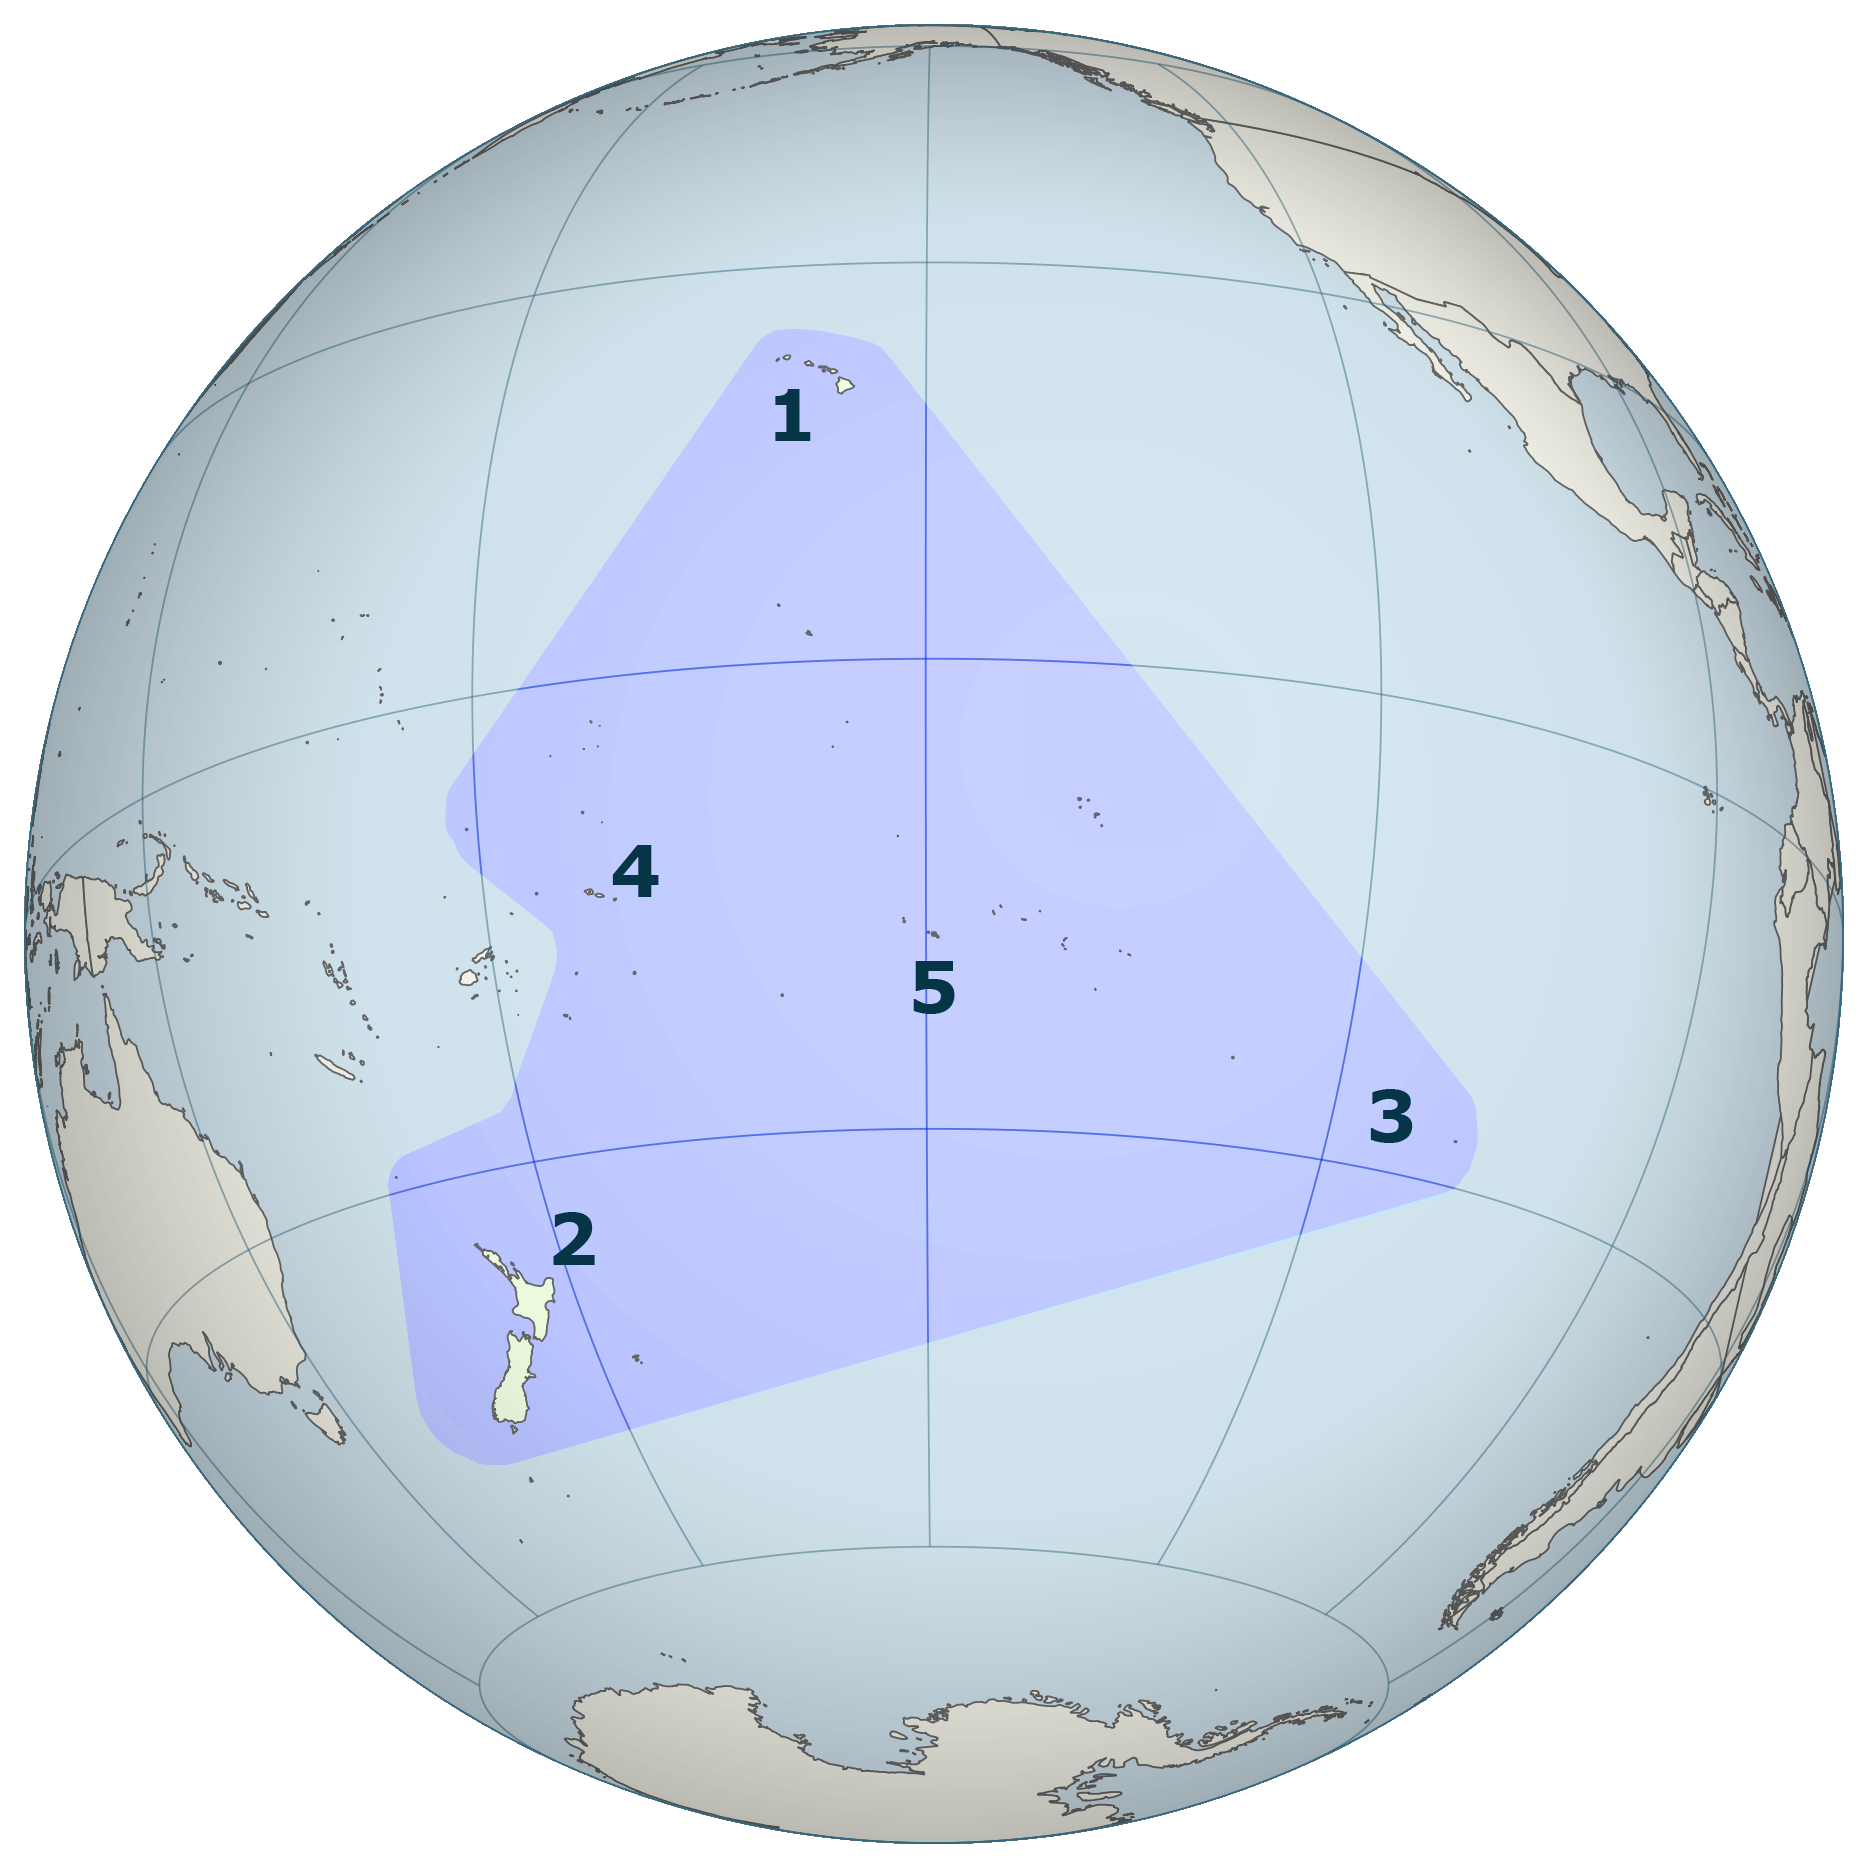 The Polynesian Triangle is a geographical region of the Pacific Ocean with Hawai<!-- okina -->i (1), New Zealand (Aotearoa) (2) and Rapa Nui (3) at its corners. At the center is Tahiti (5), with Samoa (4) to the west.